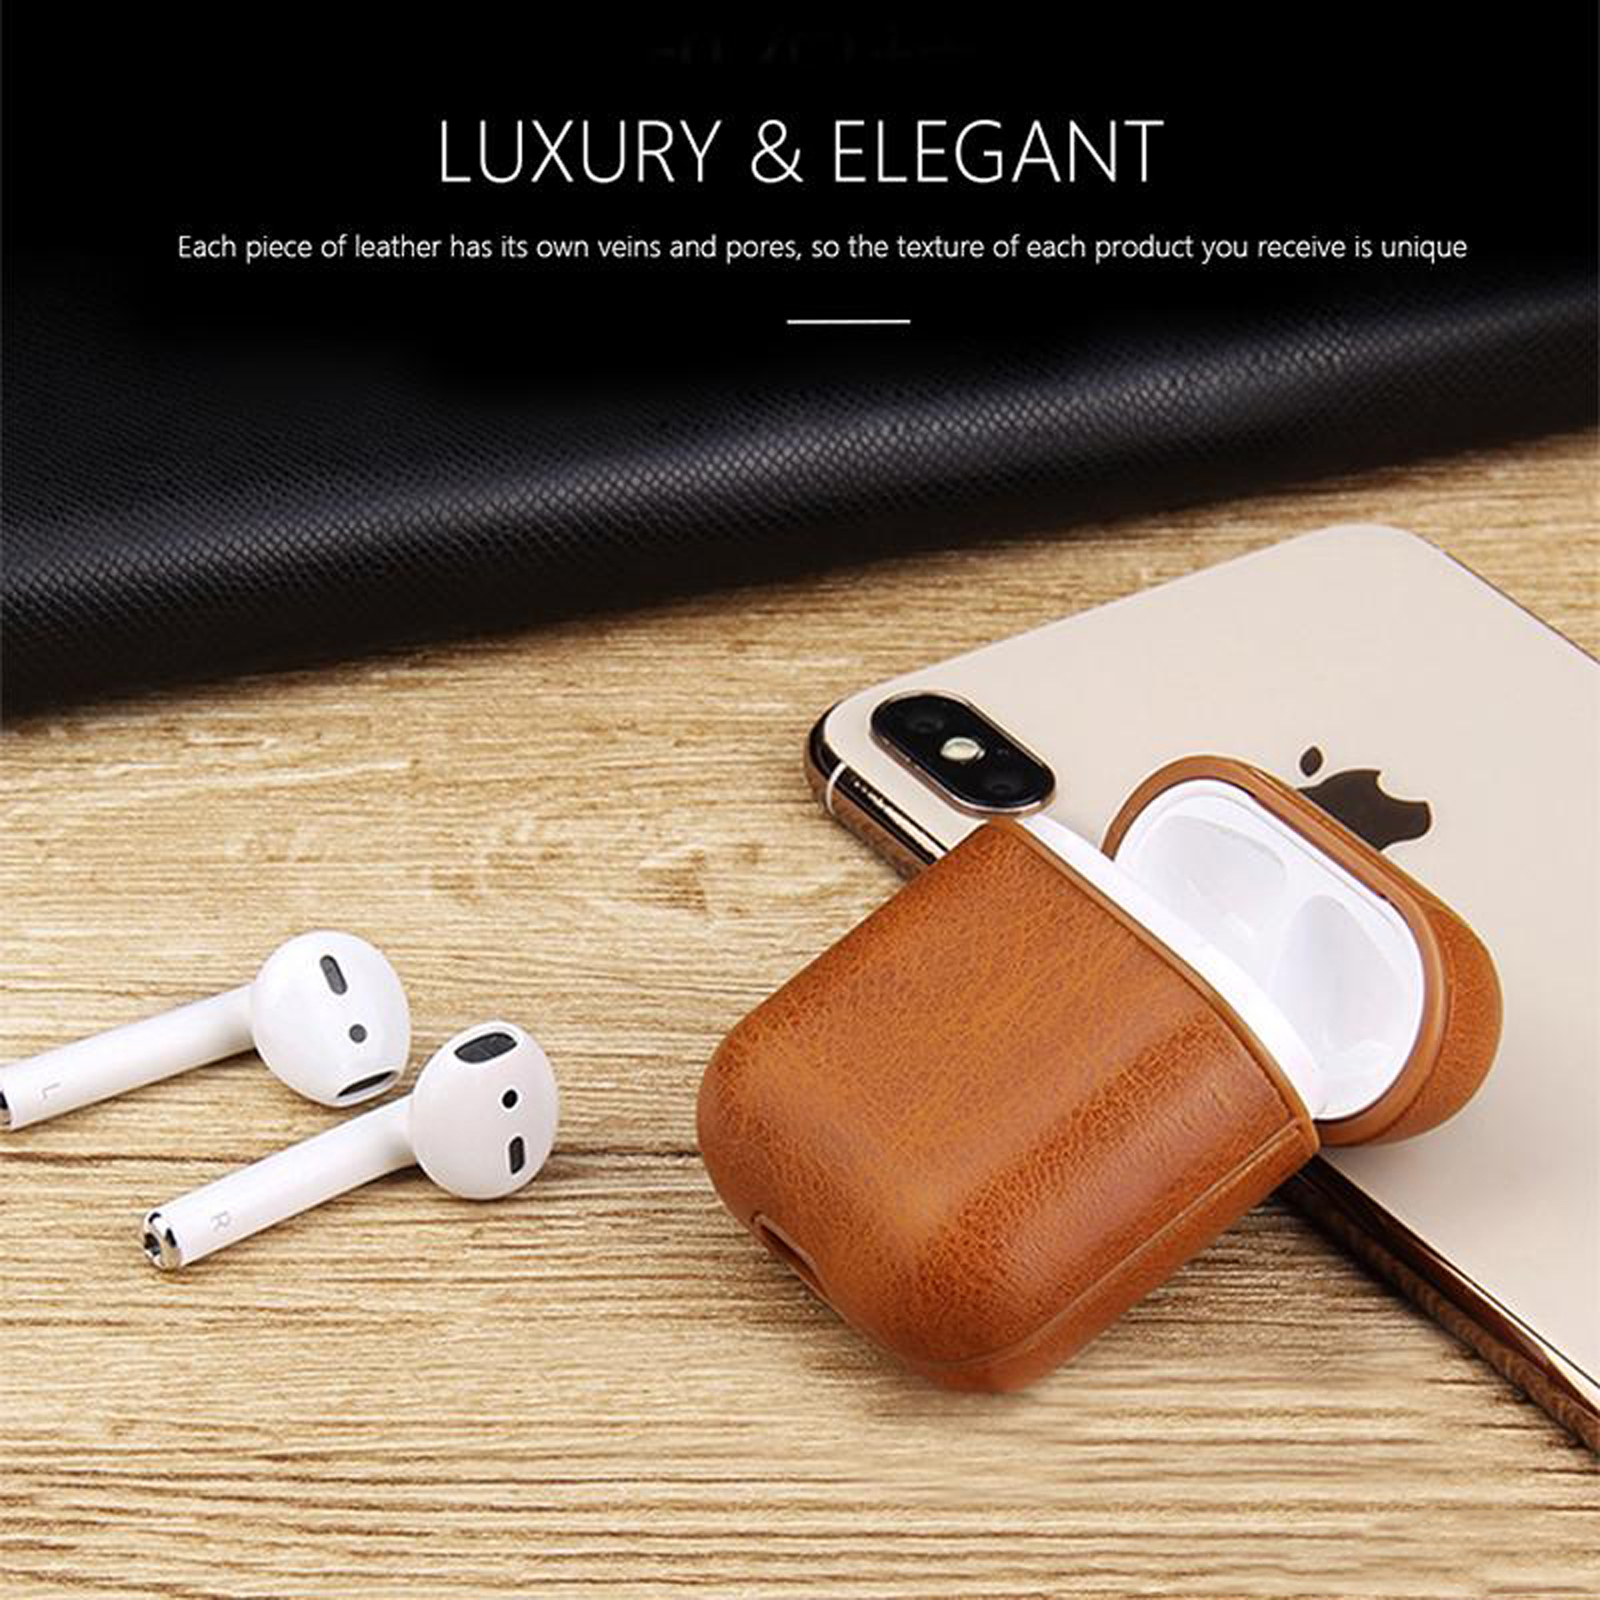 New-Leather-Soft-Skin-Case-For-Apple-Airpods-1-2-1st-2nd-Gen-Earphones-PU-Cover thumbnail 16